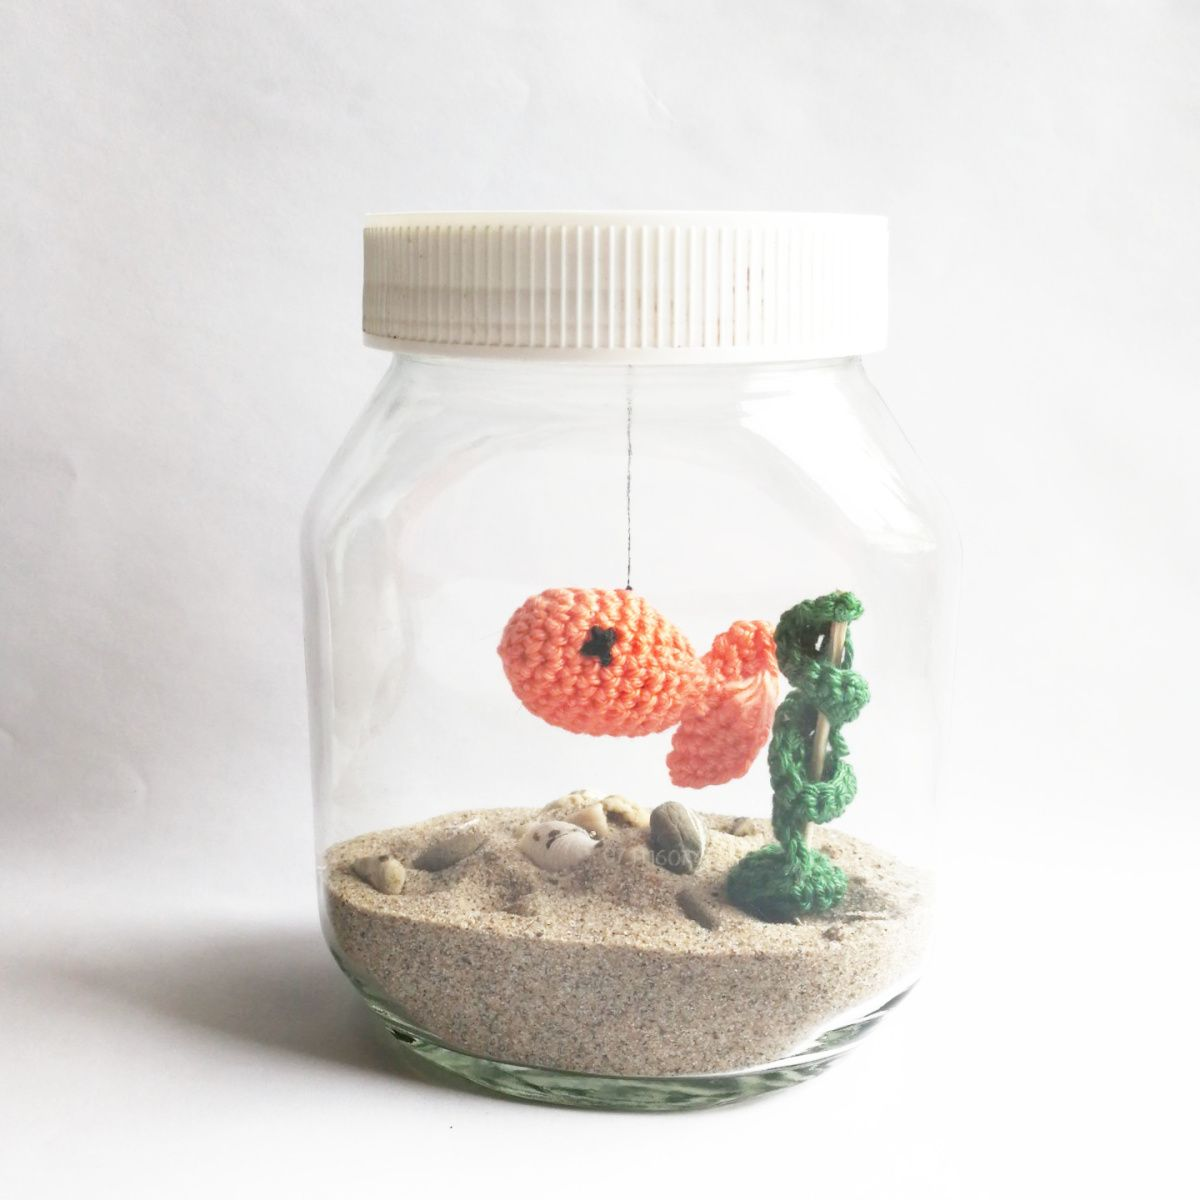 diy aquarium f r faule things i 39 ll crochet animals h keln basteln h keln ideen. Black Bedroom Furniture Sets. Home Design Ideas